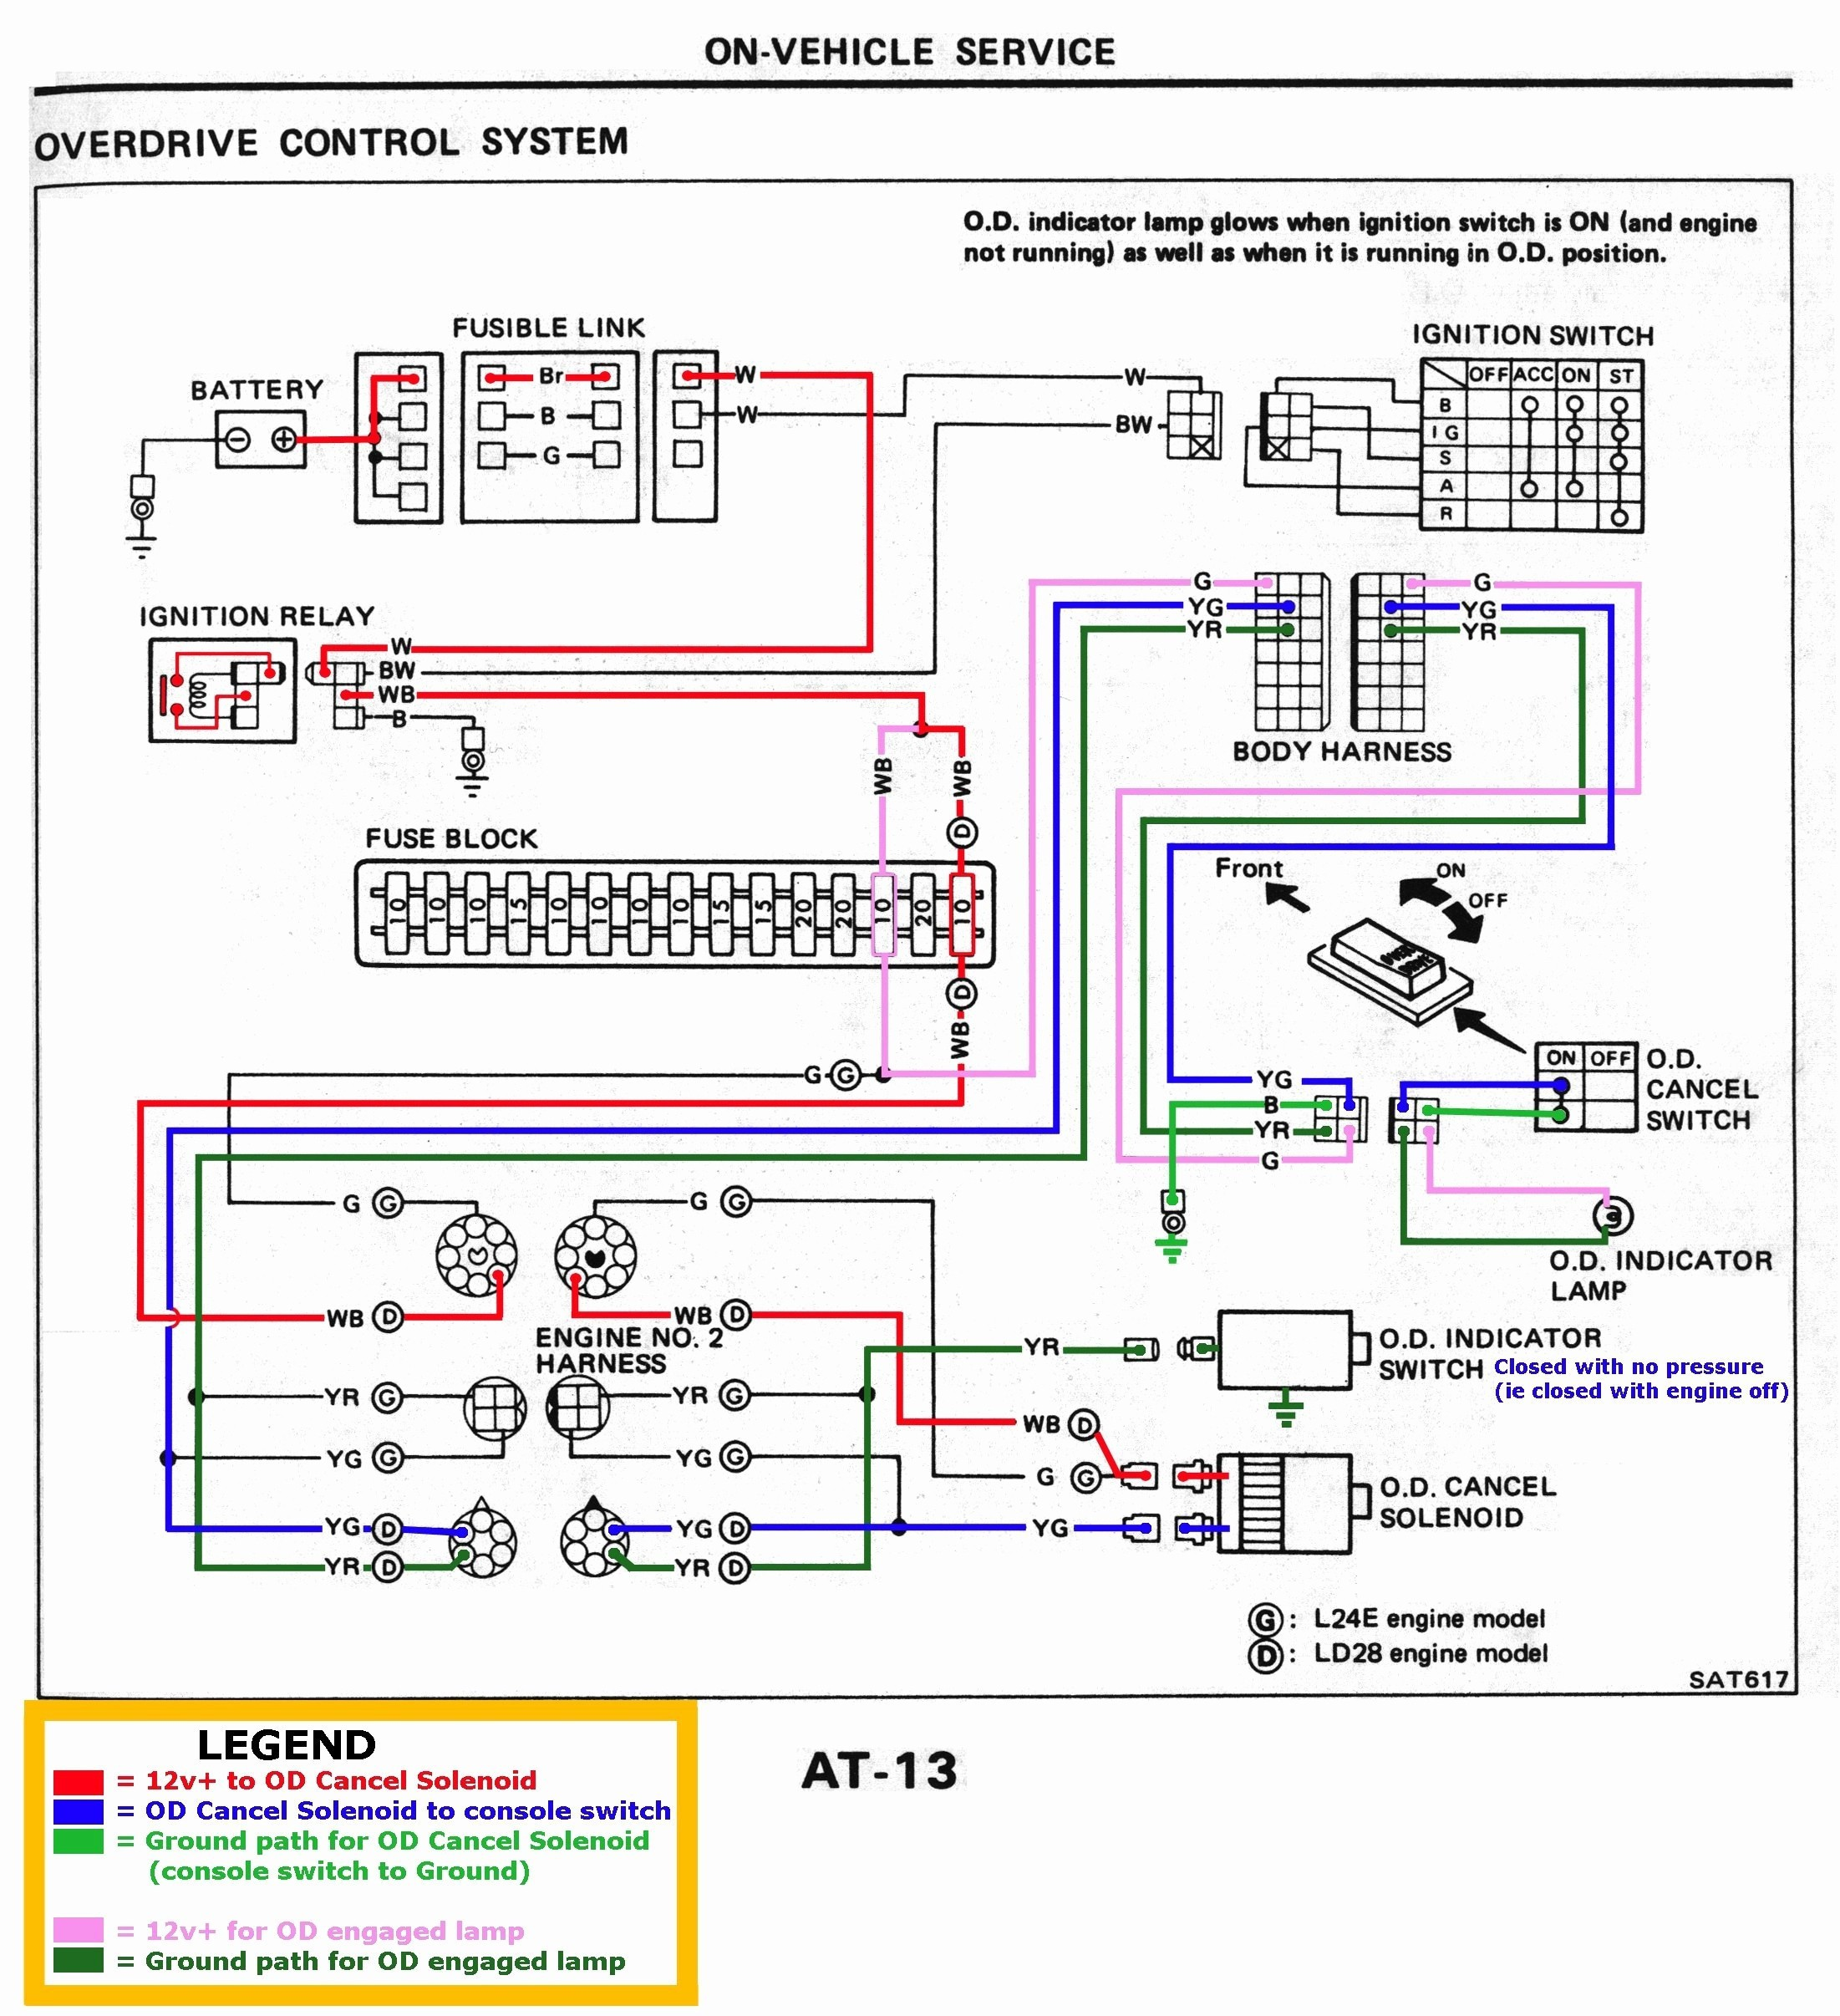 square d pressure switch wiring for 110 volt pump schematic diagrams rh  ogmconsulting co Light Switch Housold 110V AC Wiring Diagram Momentary  Rocker Switch ...